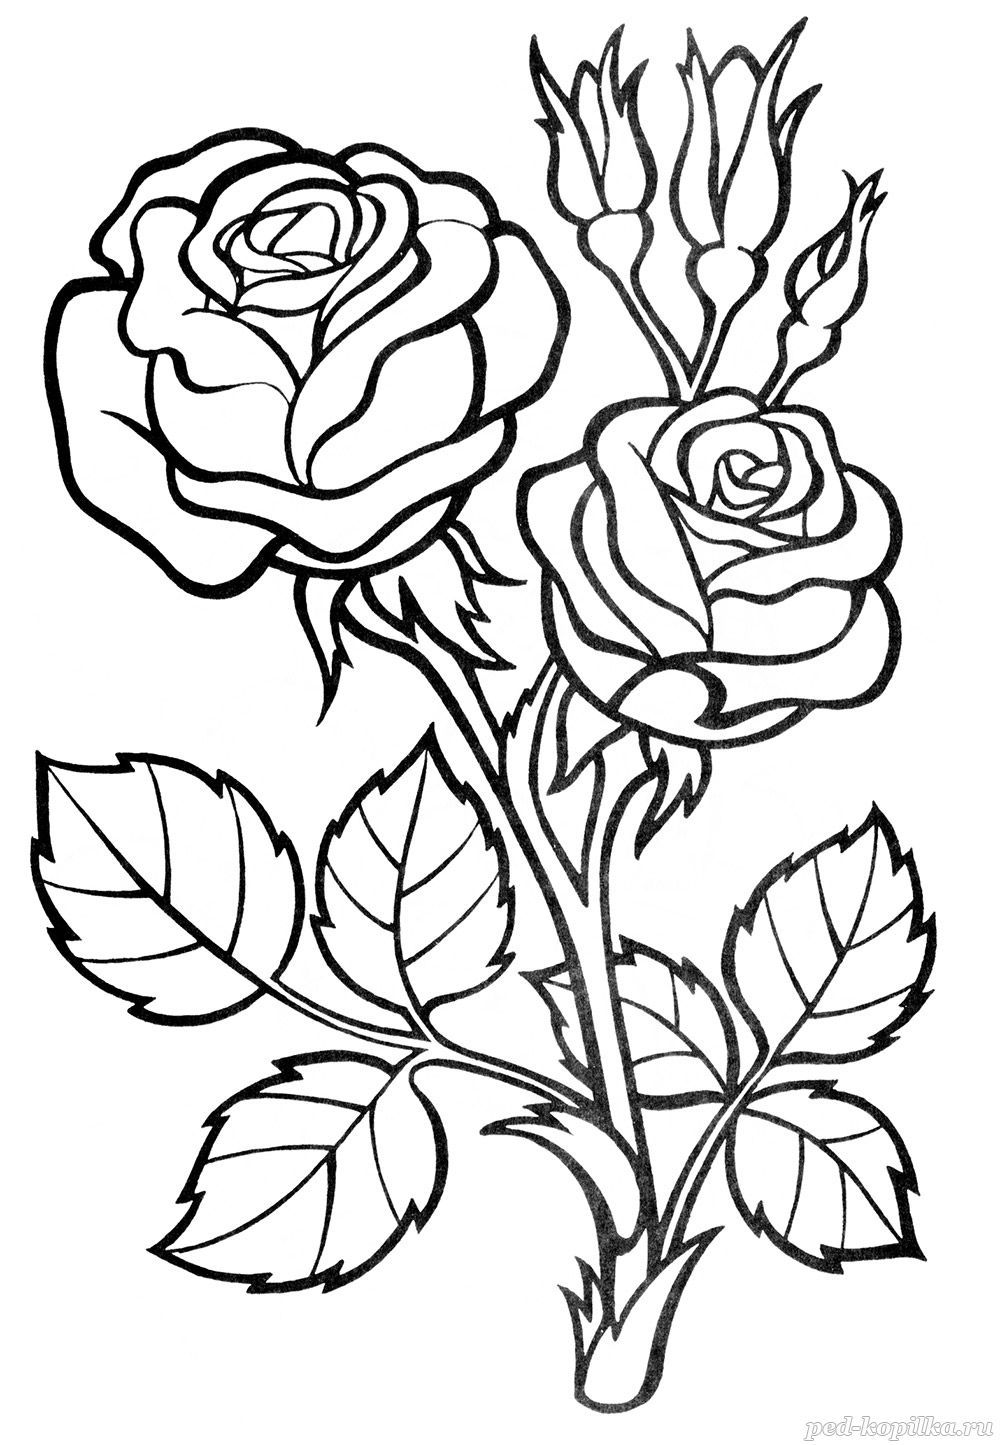 flower doodle coloring pages rose flower colouring pages for kids kids colouring flower coloring doodle pages